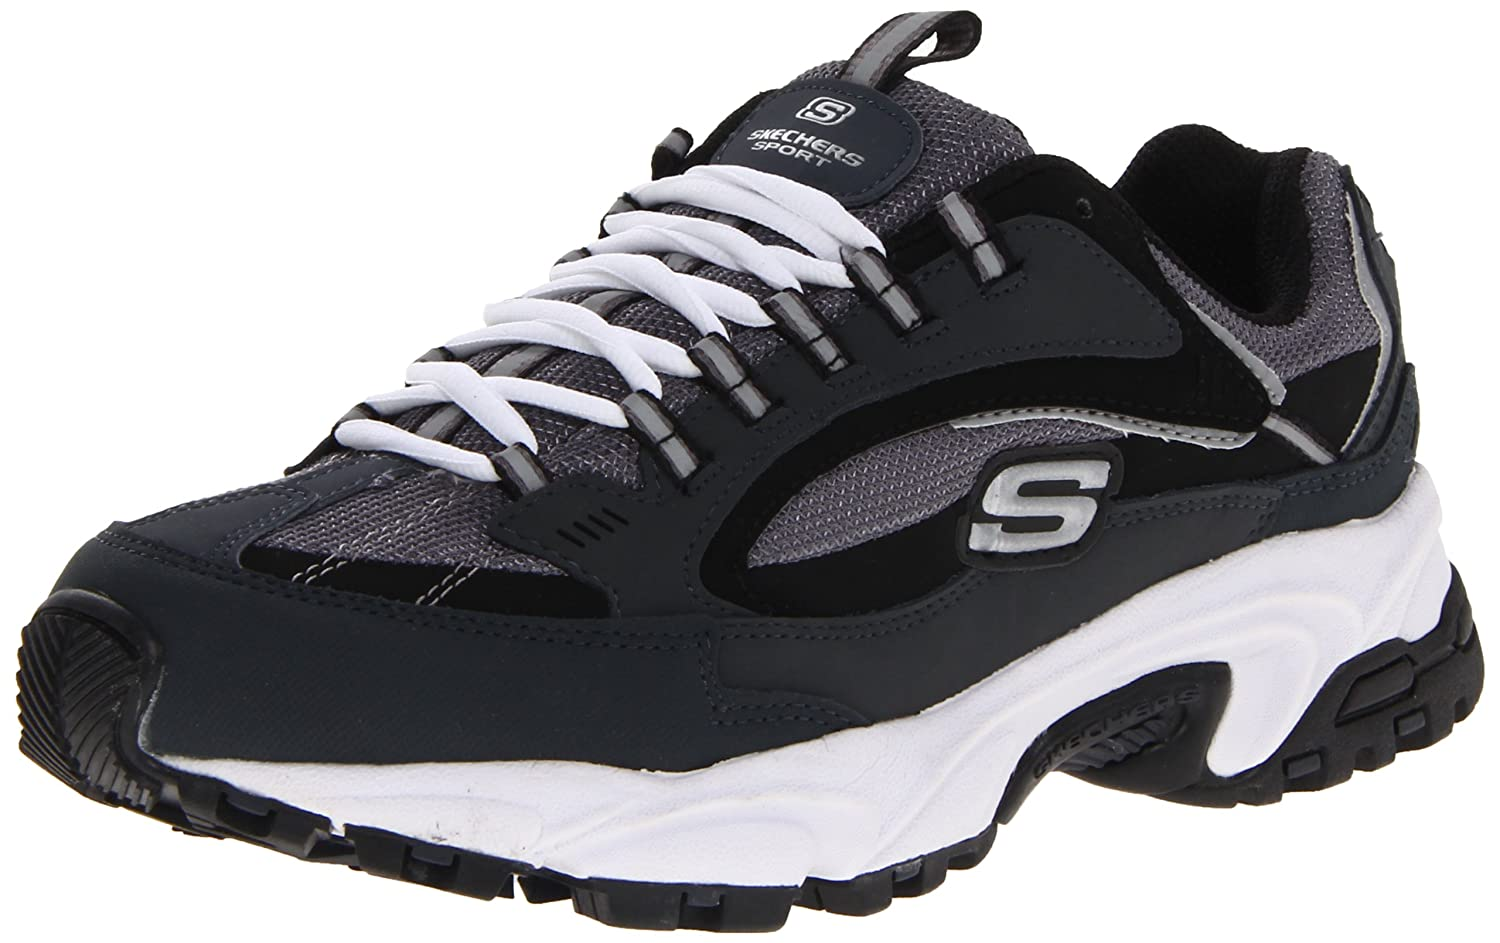 Skechers Go Walk 3 Charge - Zapatillas Hombre 11.5 D(M) US|Navy/Black